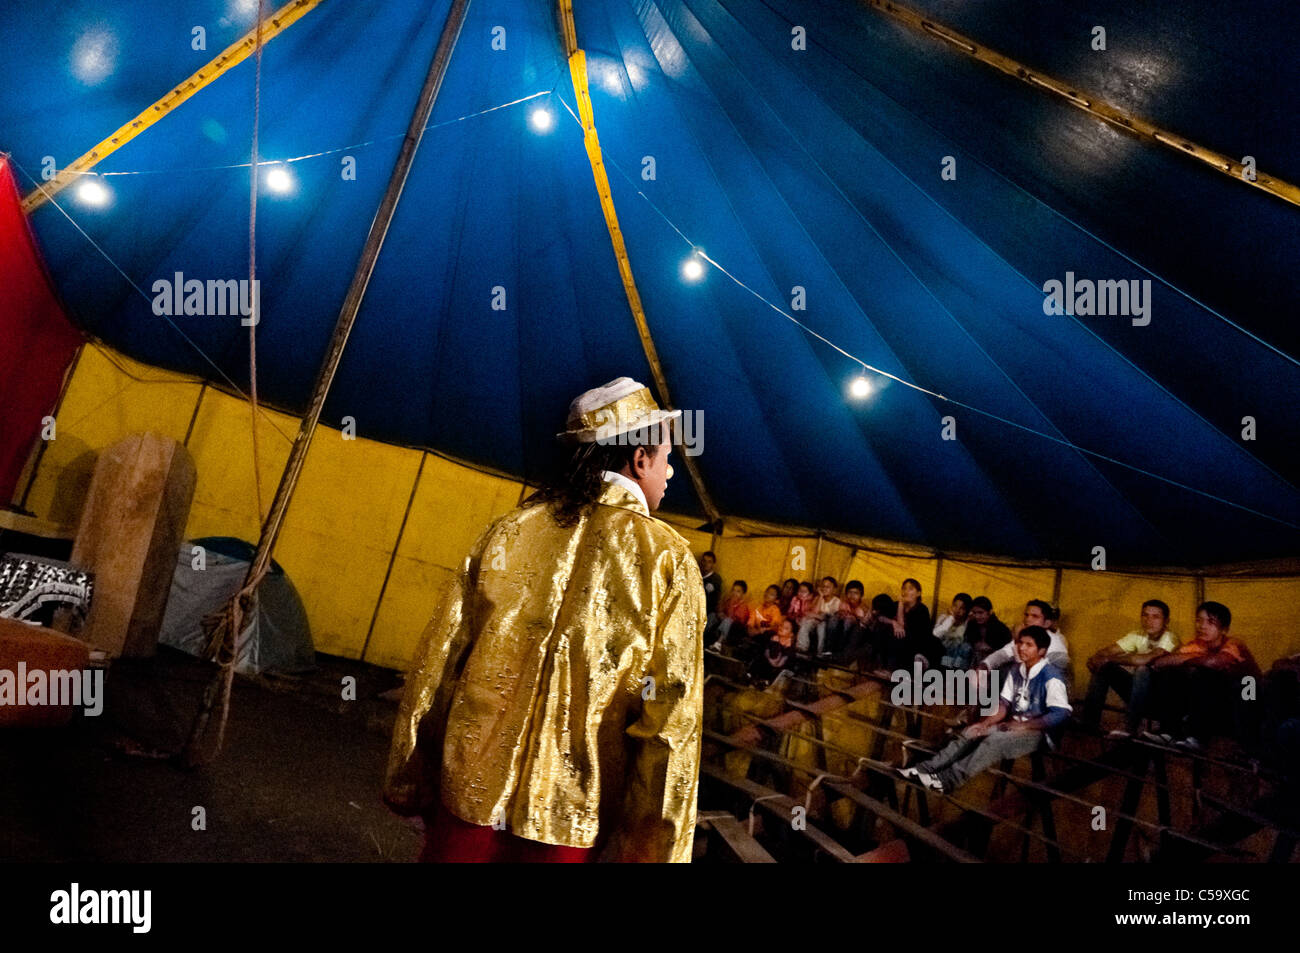 Walter, a Colombian clown, performs in front of an audience at the Circo Anny, a family run circus wandering Ecuador. - Stock Image